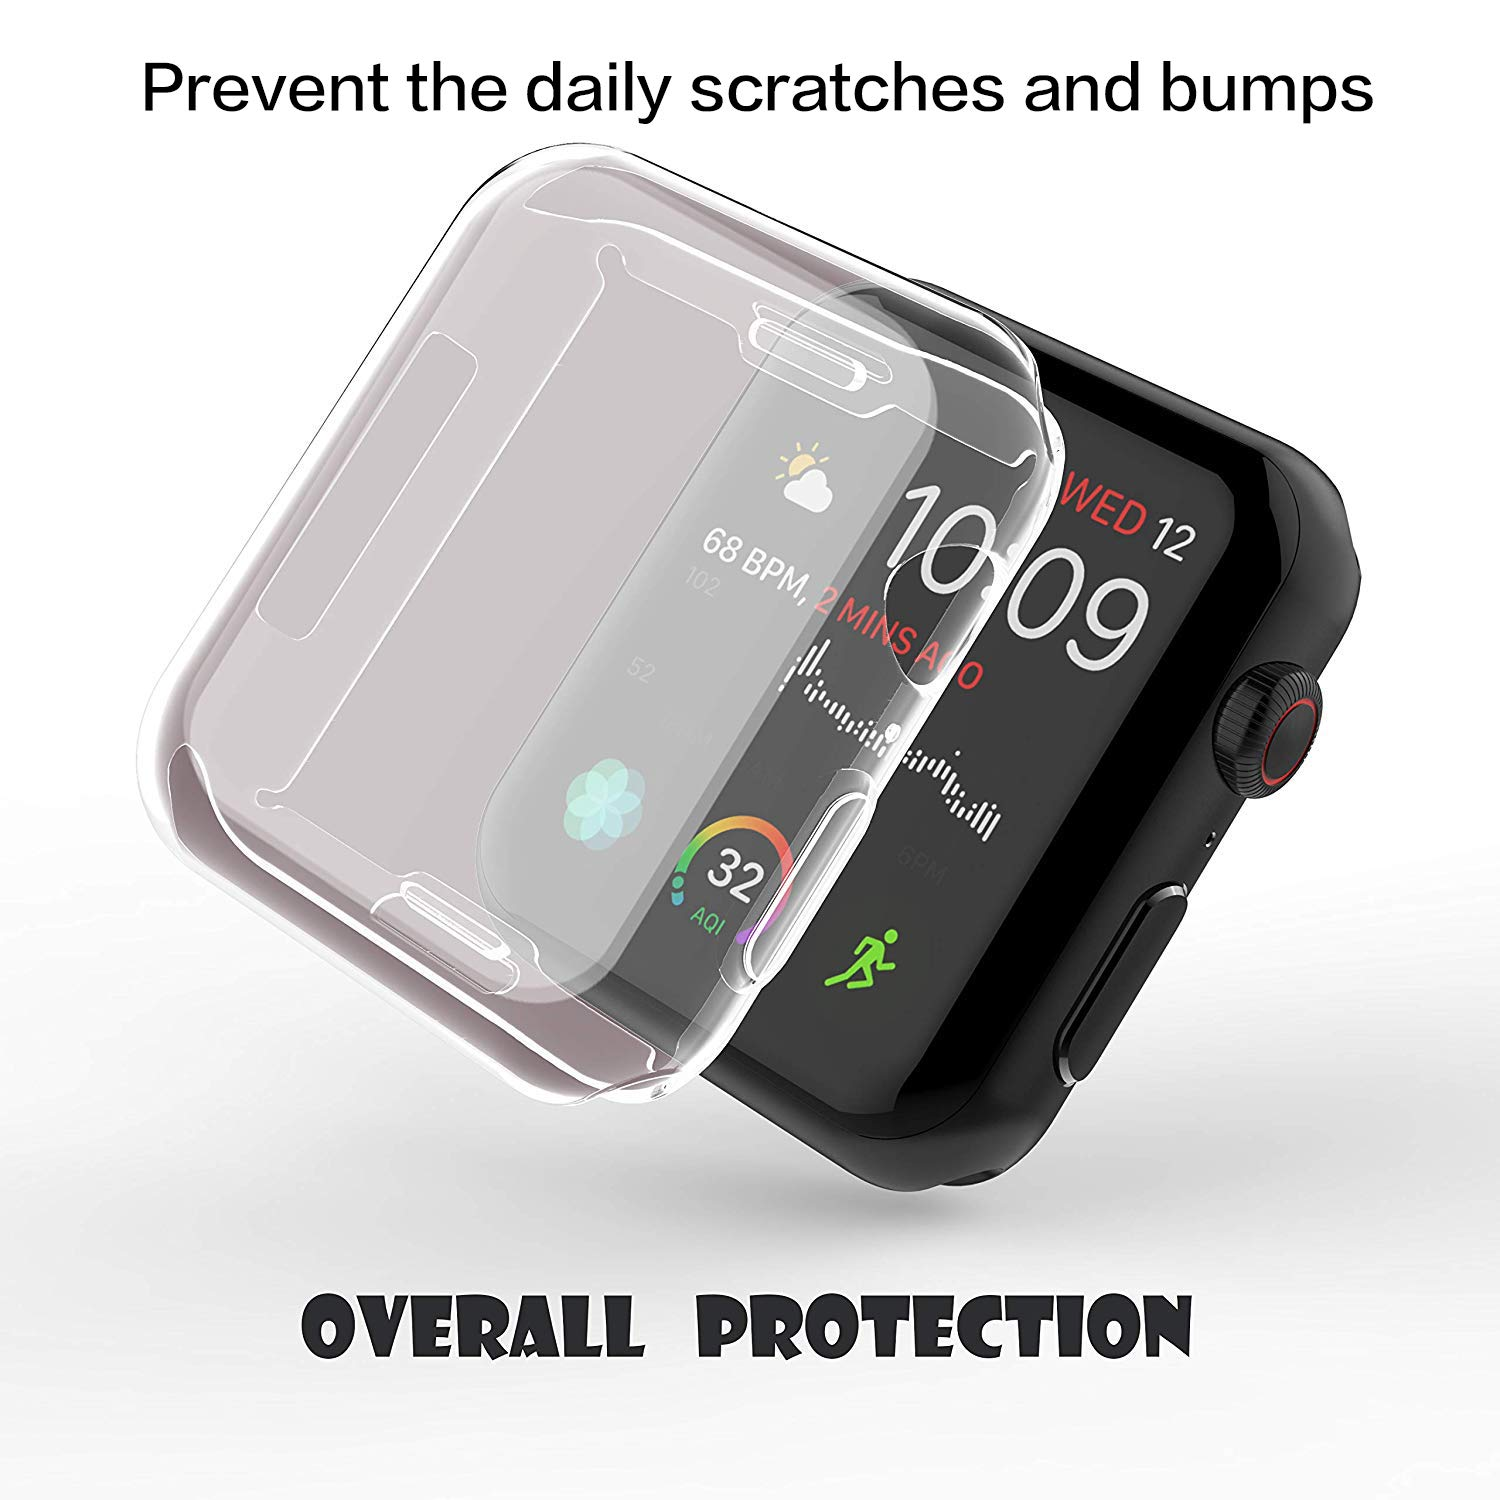 【2Pack】 Wistore Compatible with Apple Watch 4 Case 44mm, Apple Watch Series 4 Screen Protector, 2018 New iWatch Overall Protective Case TPU HD Clear Ultra-Thin Cover for Apple Watch Series 4 (44mm) by Wistore (Image #2)